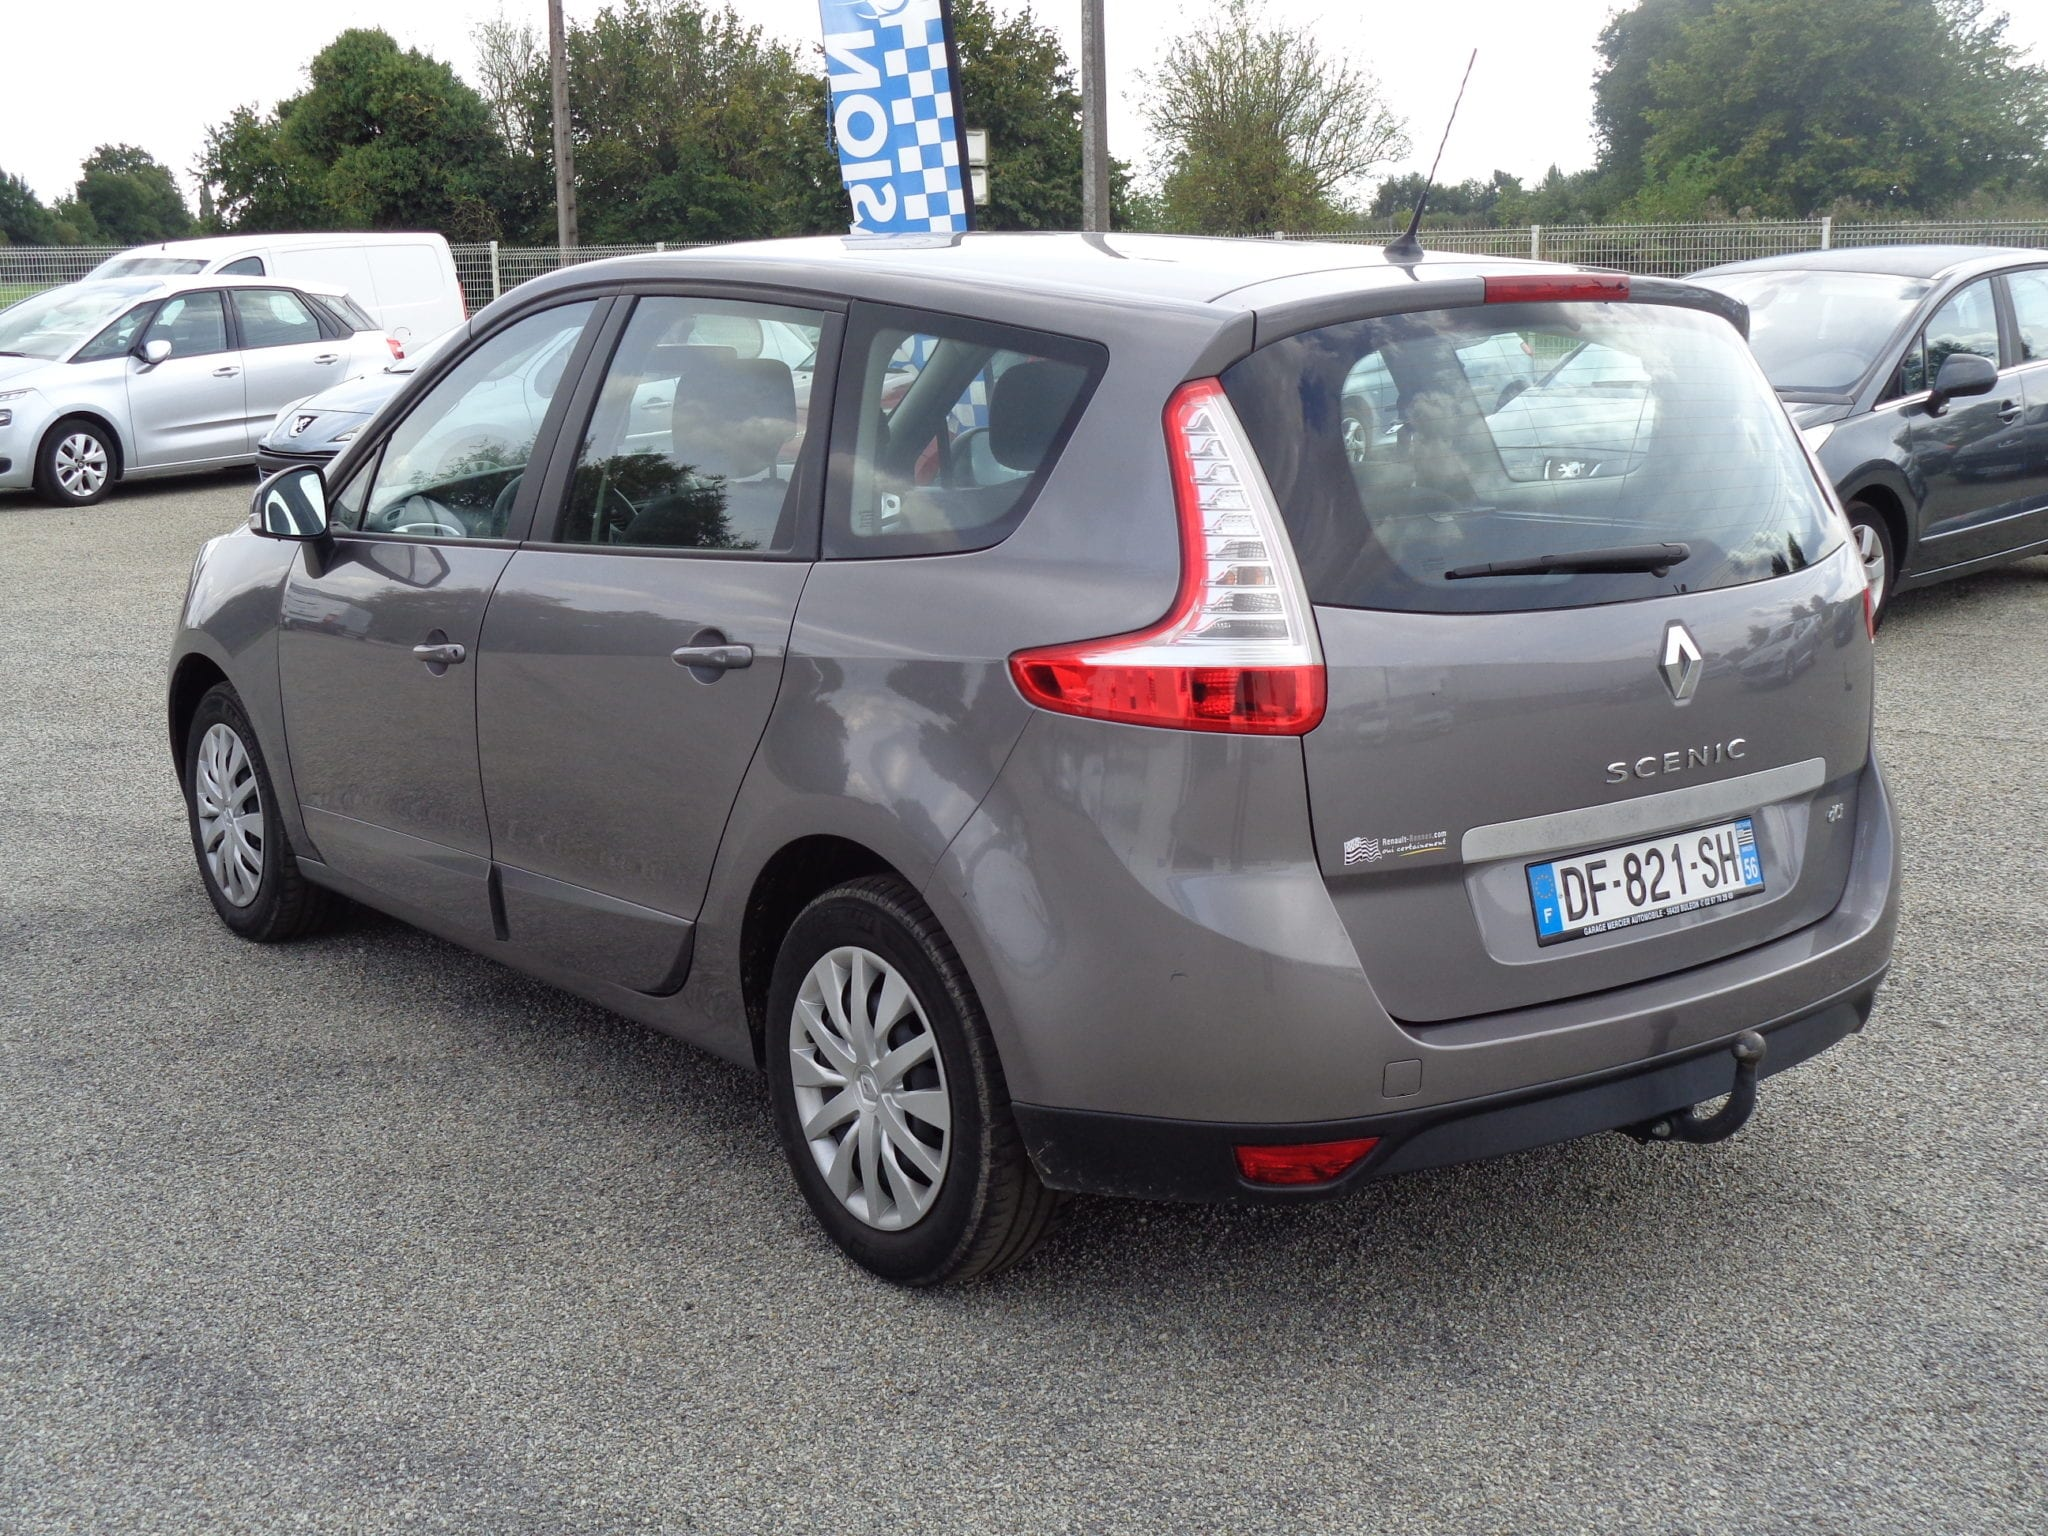 RENAULT GRAND SCENIC DCI 110 ENERGY LIFE ECO2 7 PLACES - Image 2